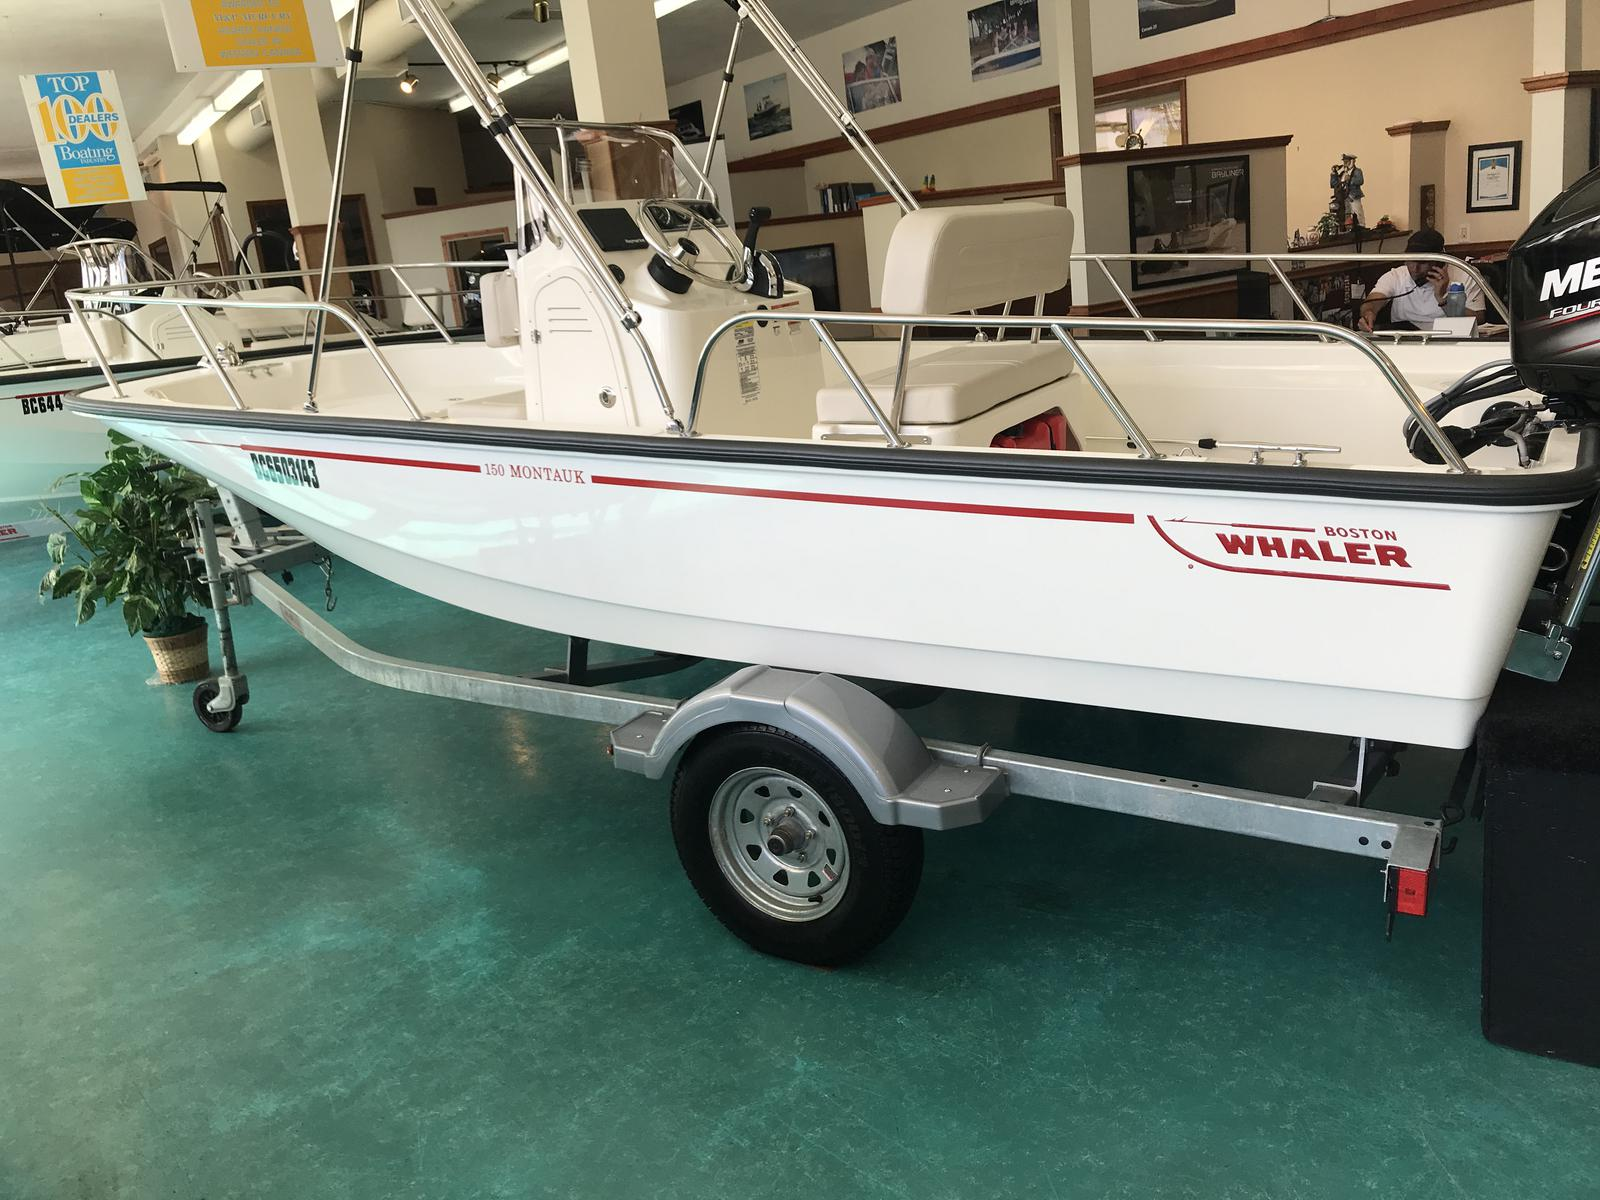 2019 Boston Whaler boat for sale, model of the boat is 150 Montauk & Image # 1 of 11